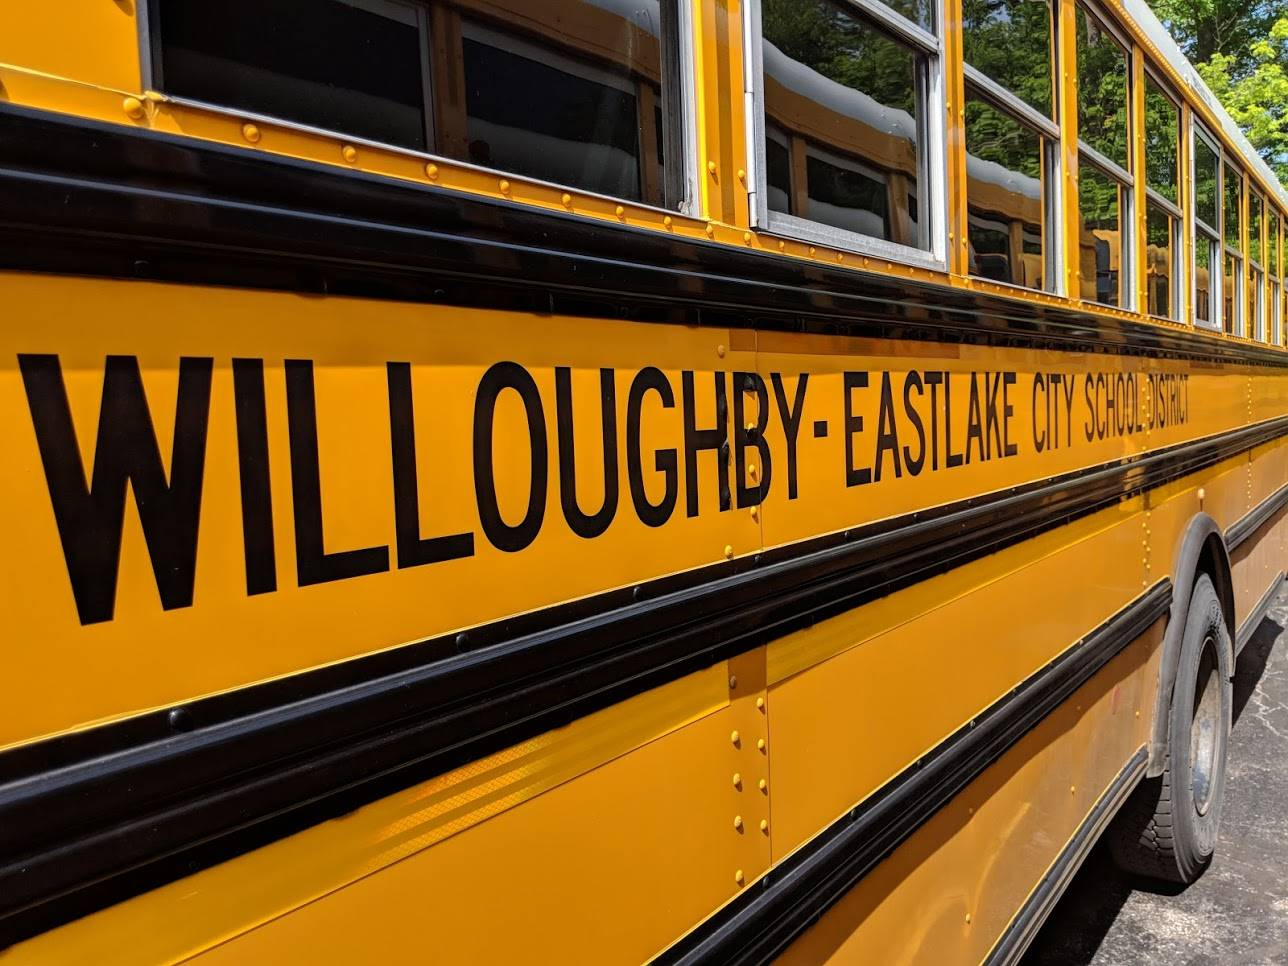 Willoughby-Eastlake School Bus